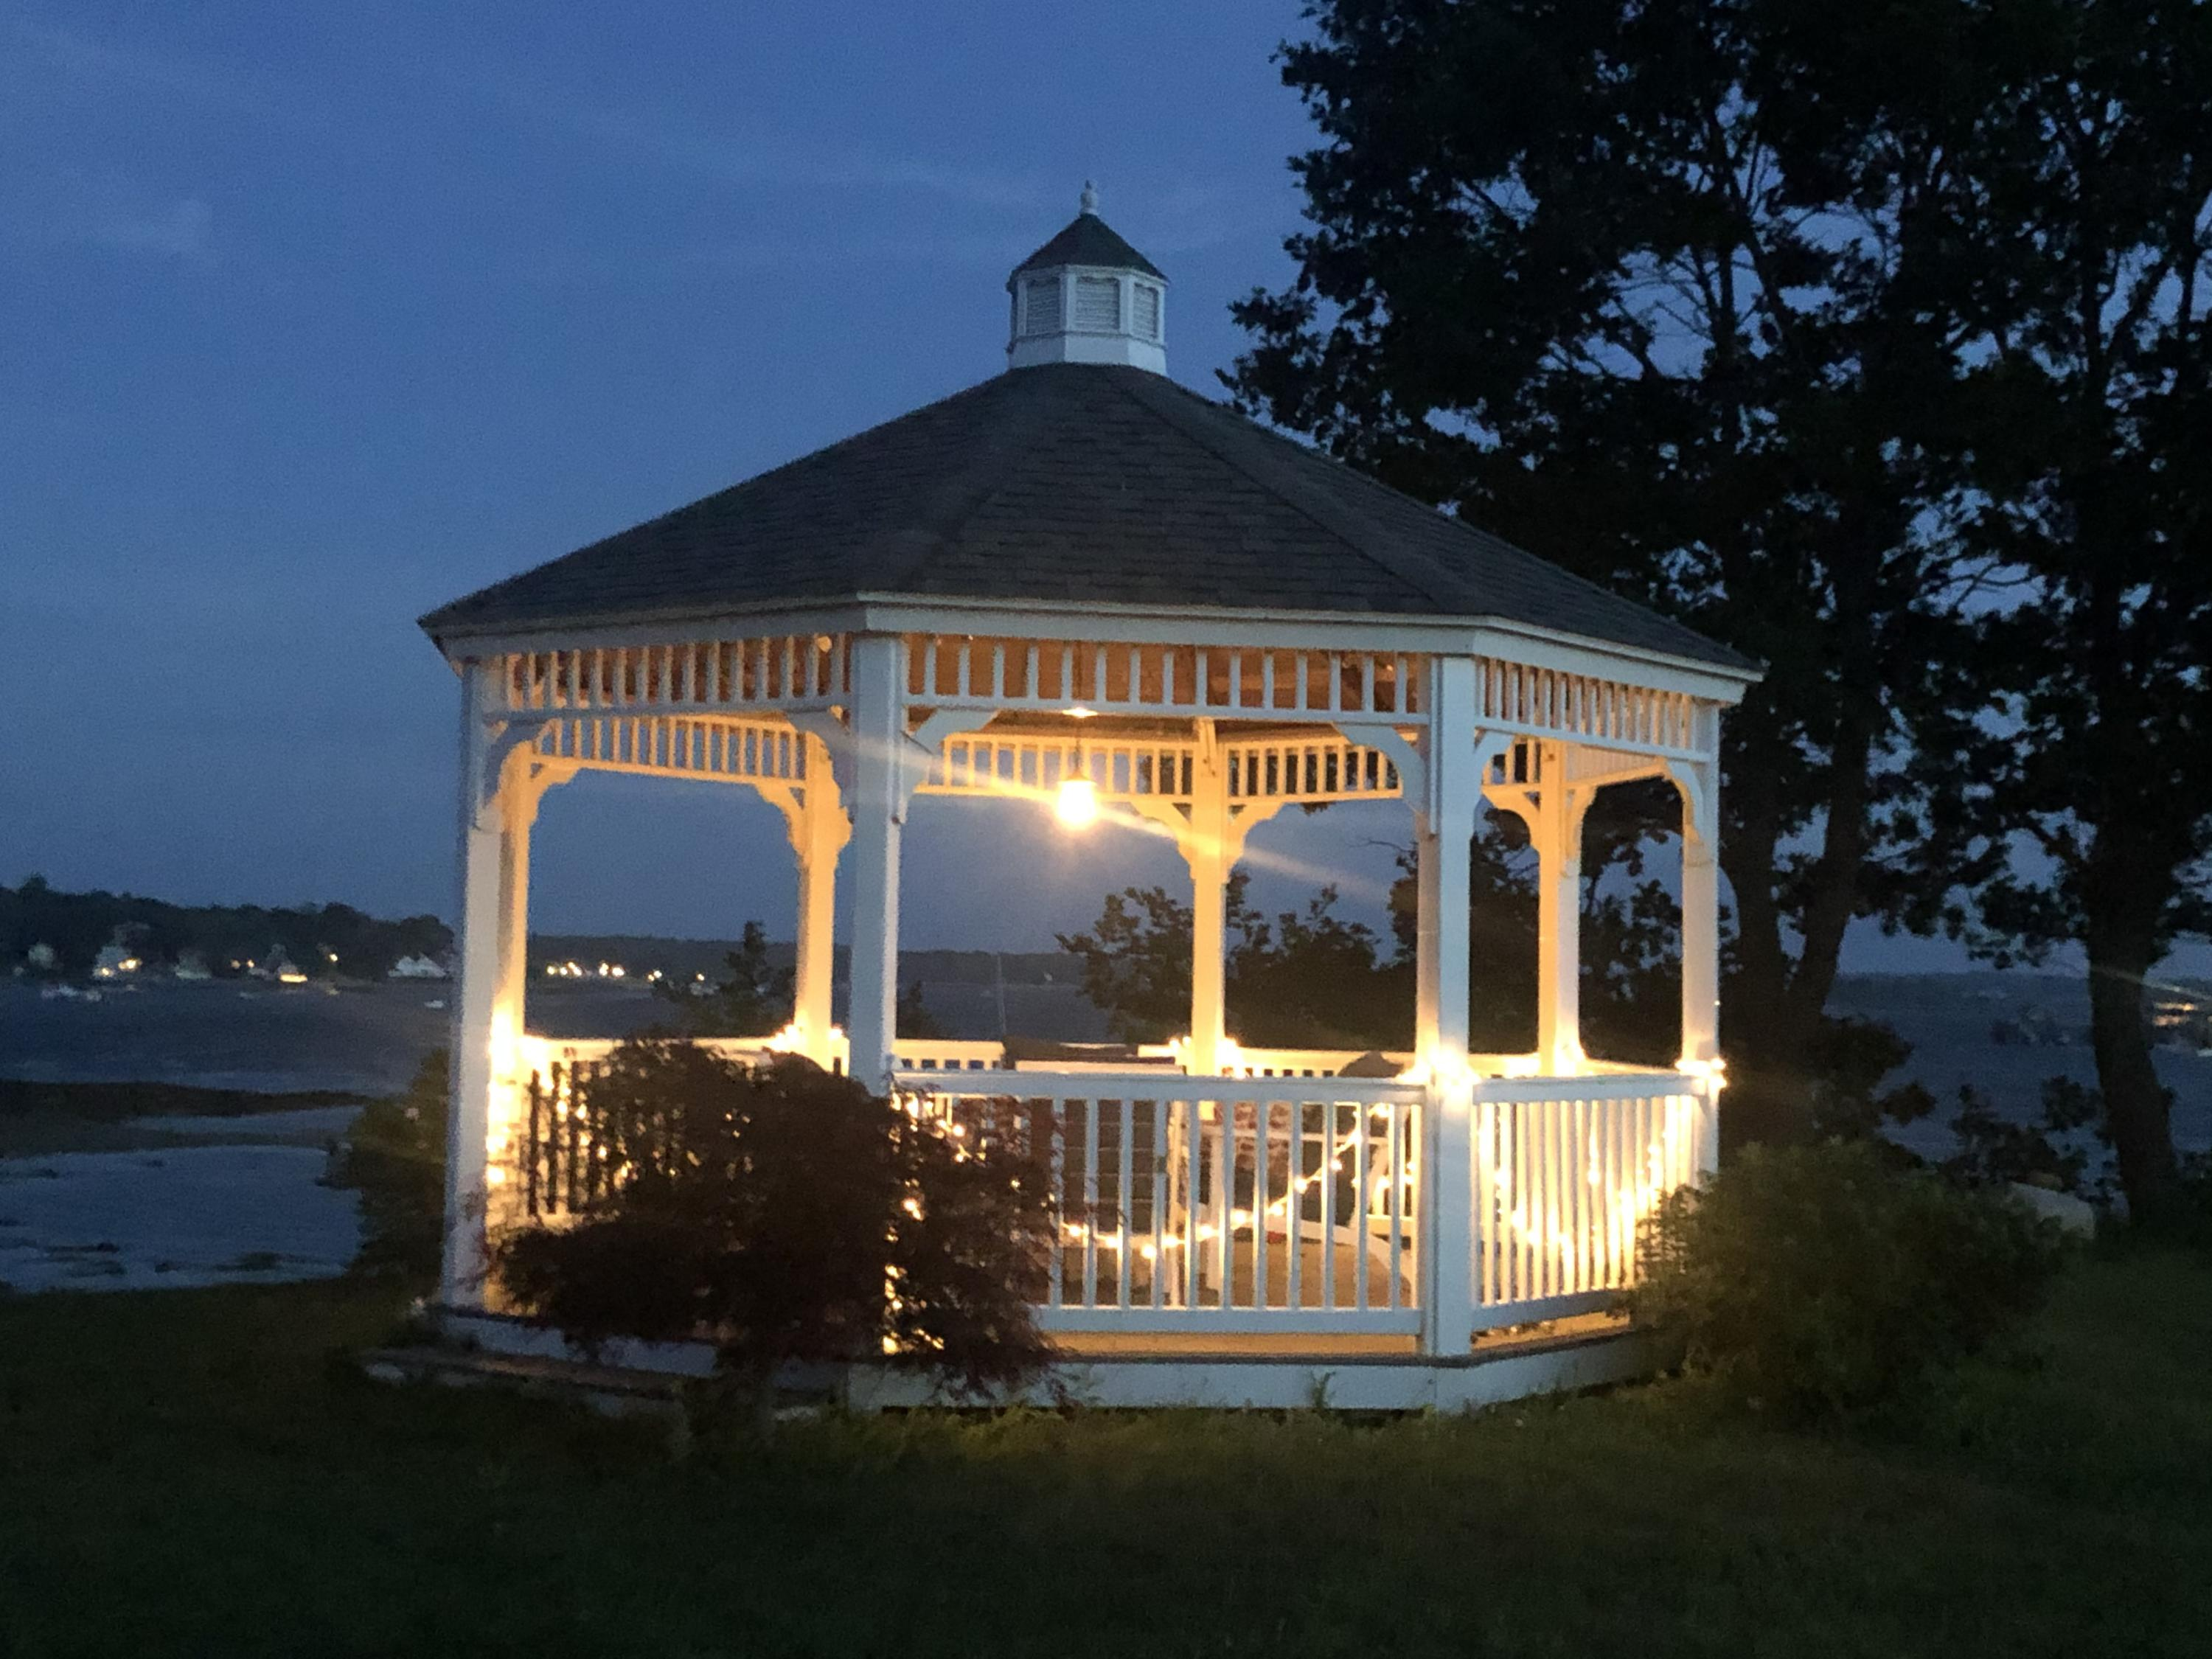 GDI gazebo night